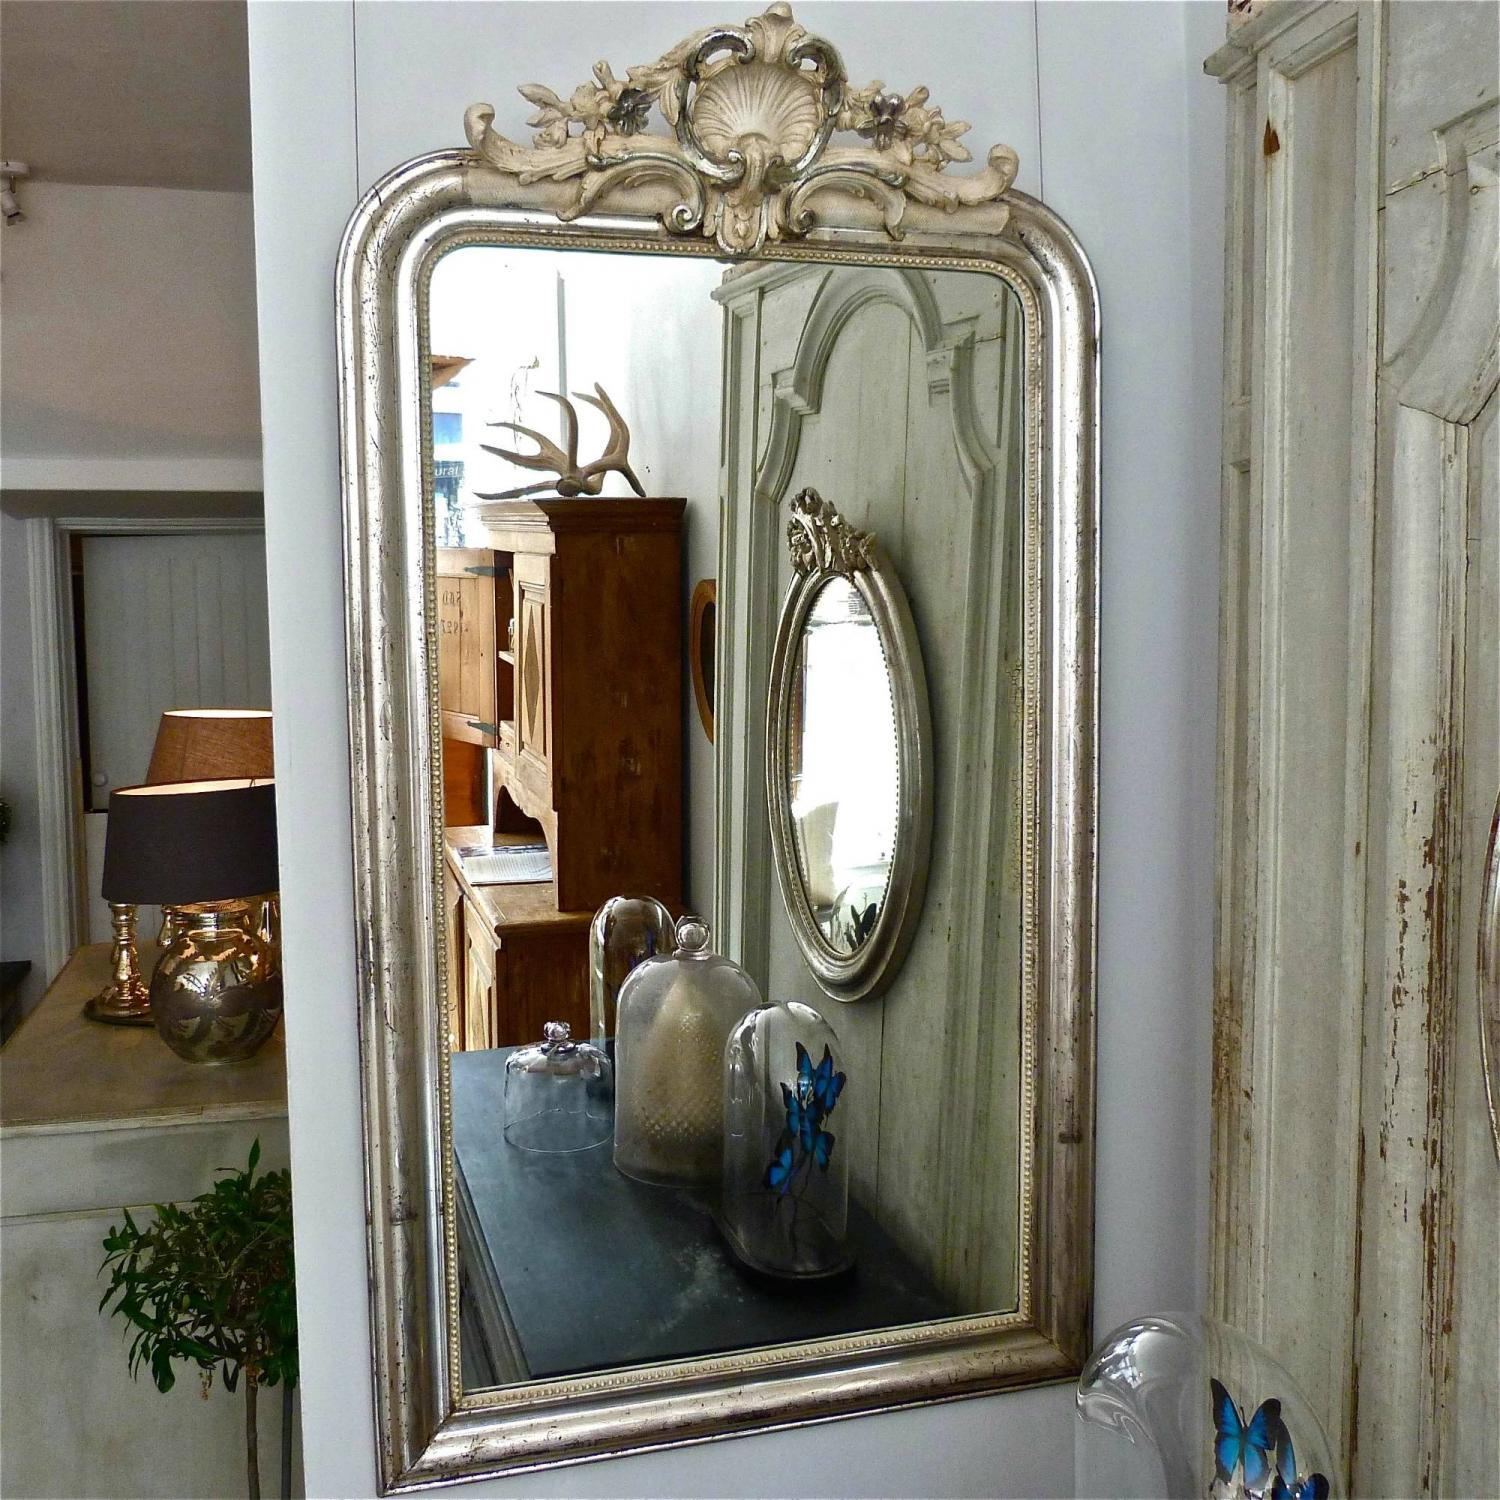 MAGNIFICENT CRESTED SILVER LOUIS PHILIPPE MIRROR